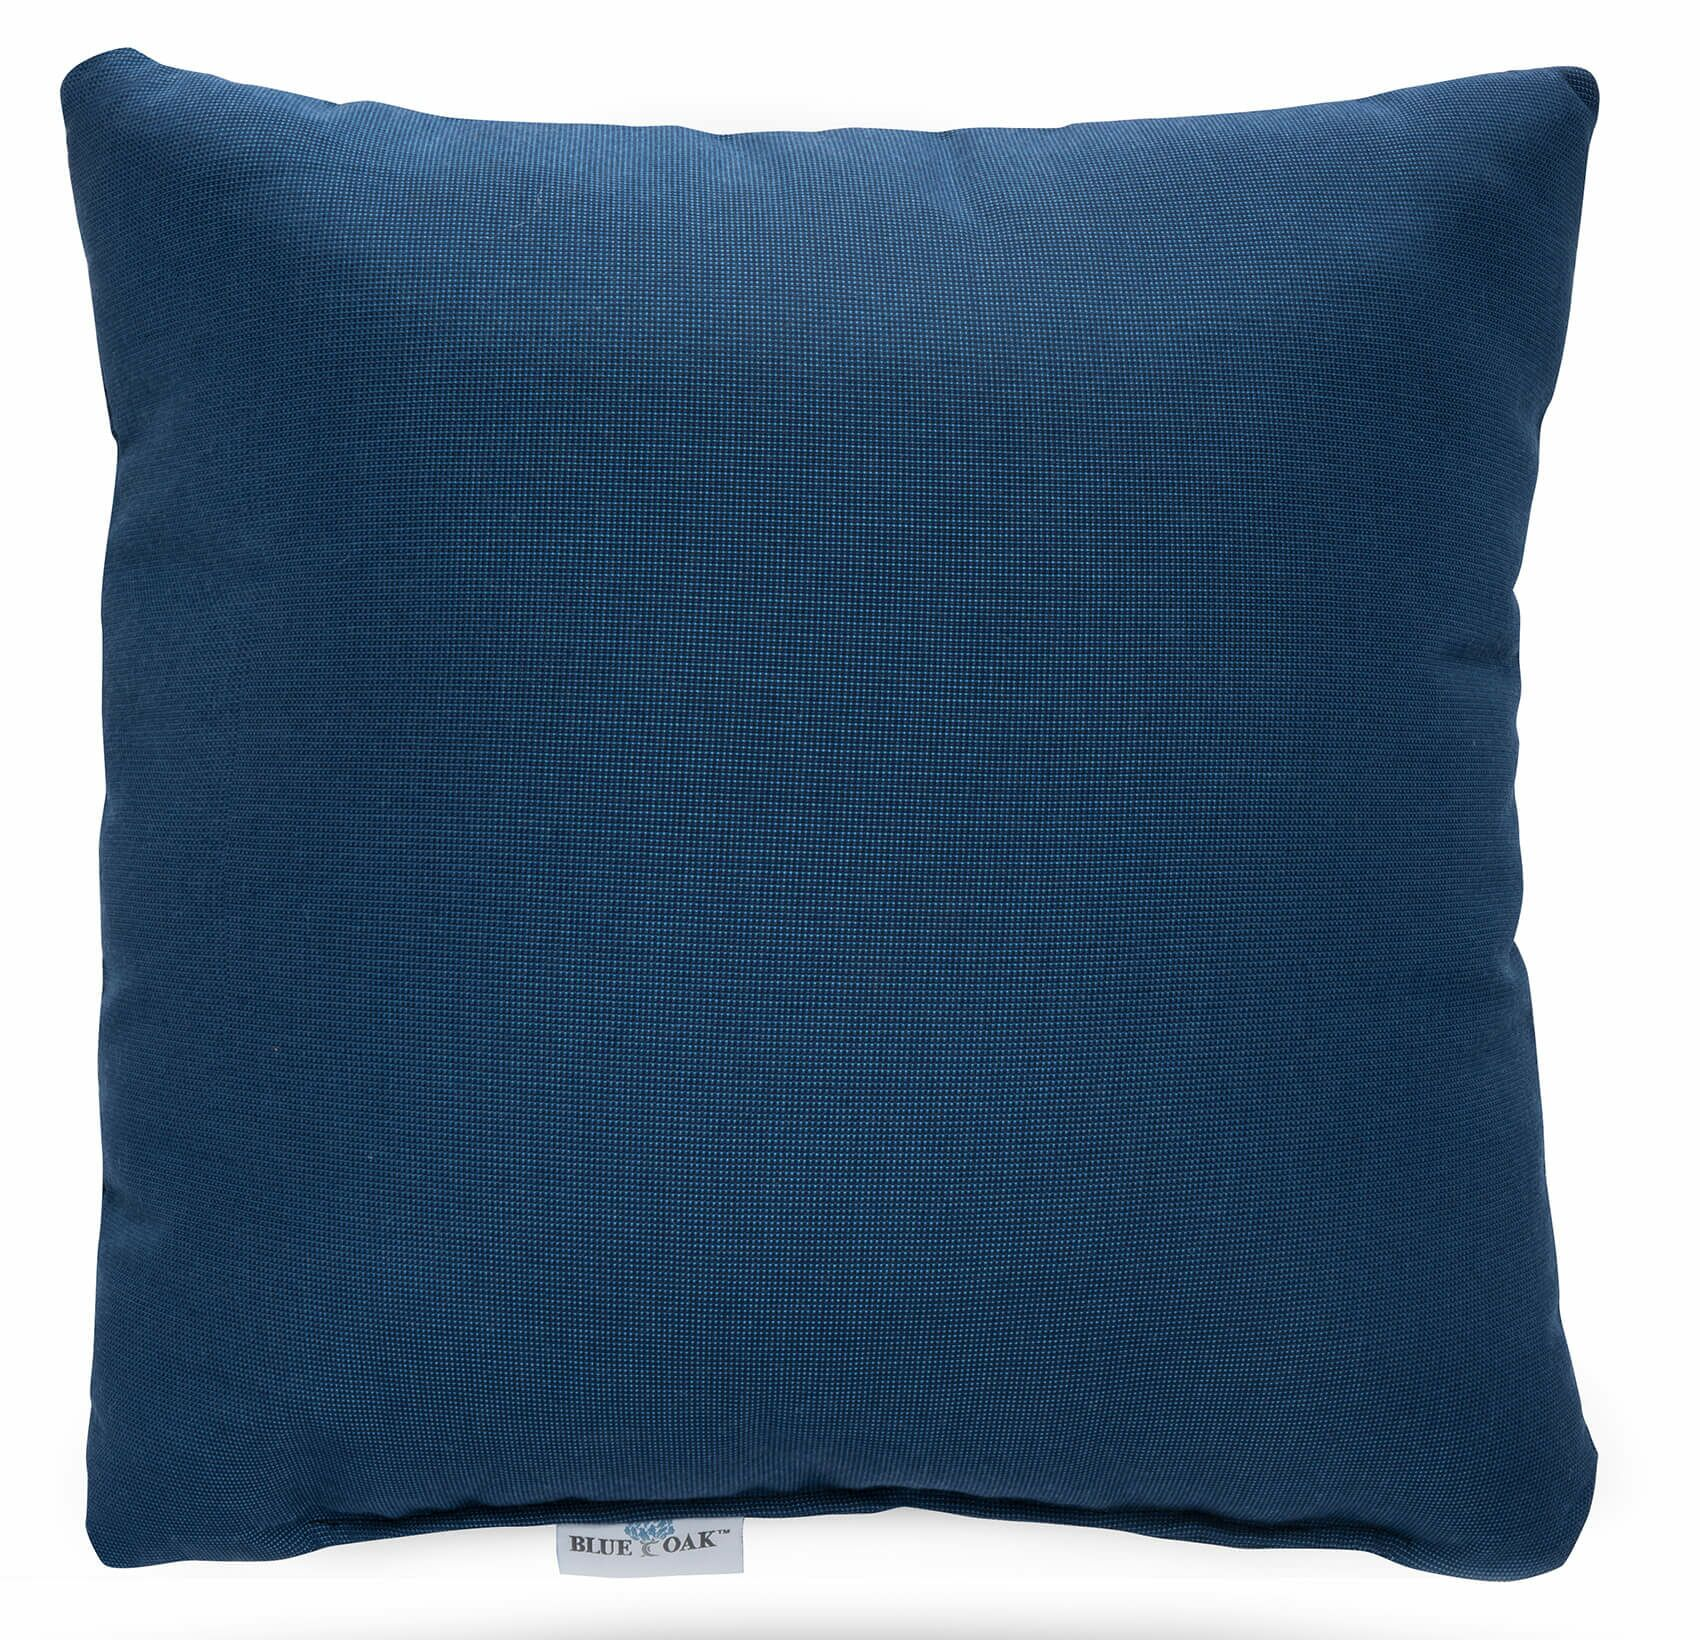 Sparkle Baltic Outdoor Acrylic Throw Pillow Color: Blue, Product Type: Throw Pillow